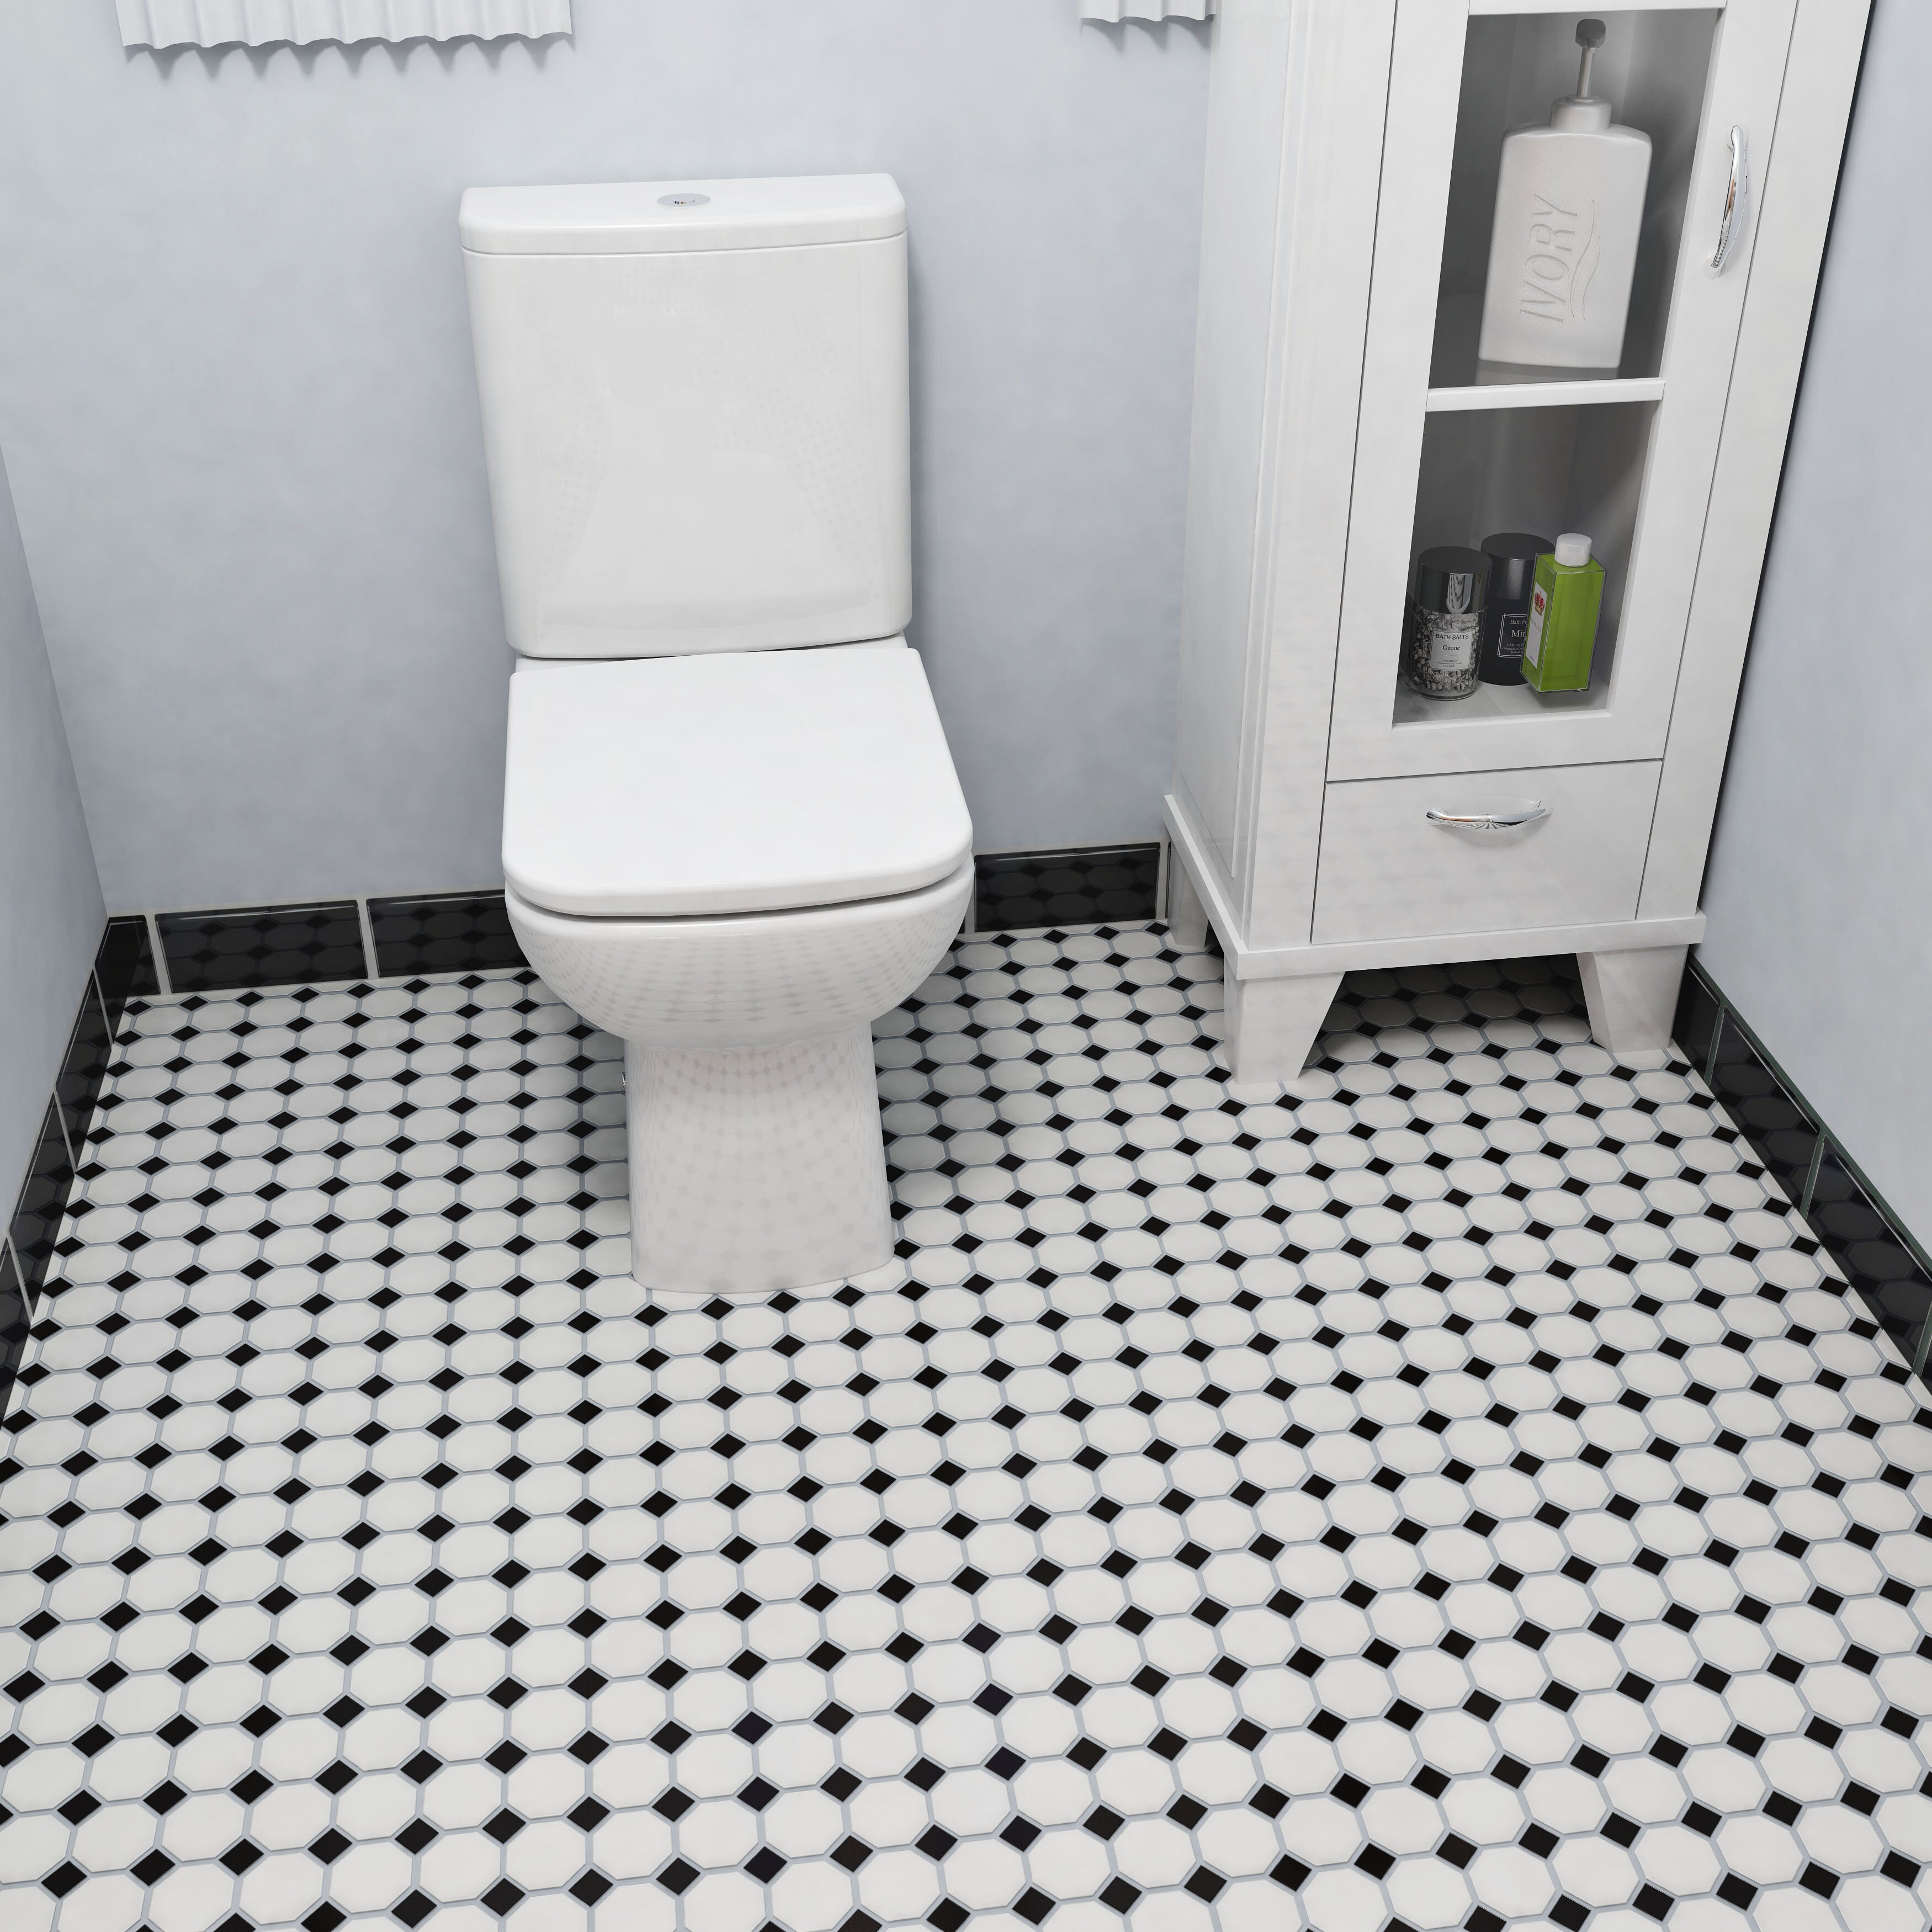 Elitetile Retro 11 5 Quot X 11 5 Quot Porcelain Mosaic Tile In